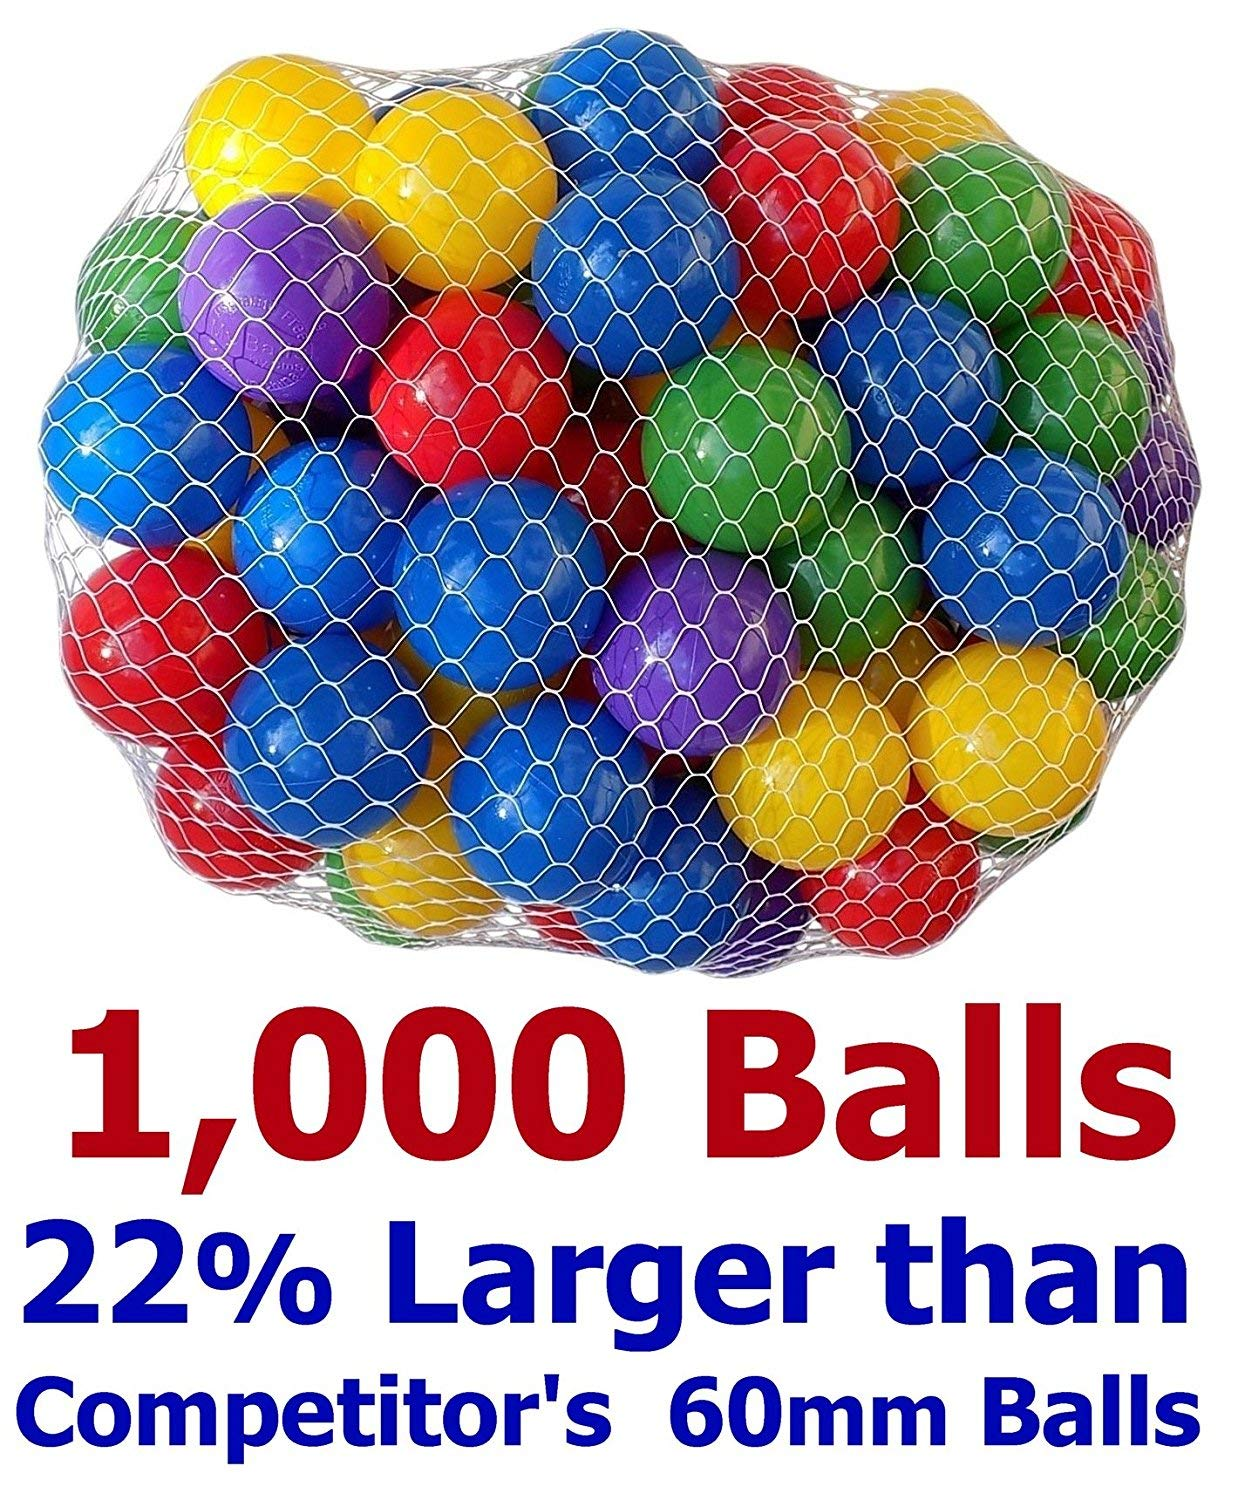 Pack of 1000 Large Size 2.5'' Crush-Proof Ball Pit Balls - 5 Colors, Phthalate Free; BPA Free, Non-Toxic, Non-Recycled Plastic (Best Value Pack of 1,000) by My Balls